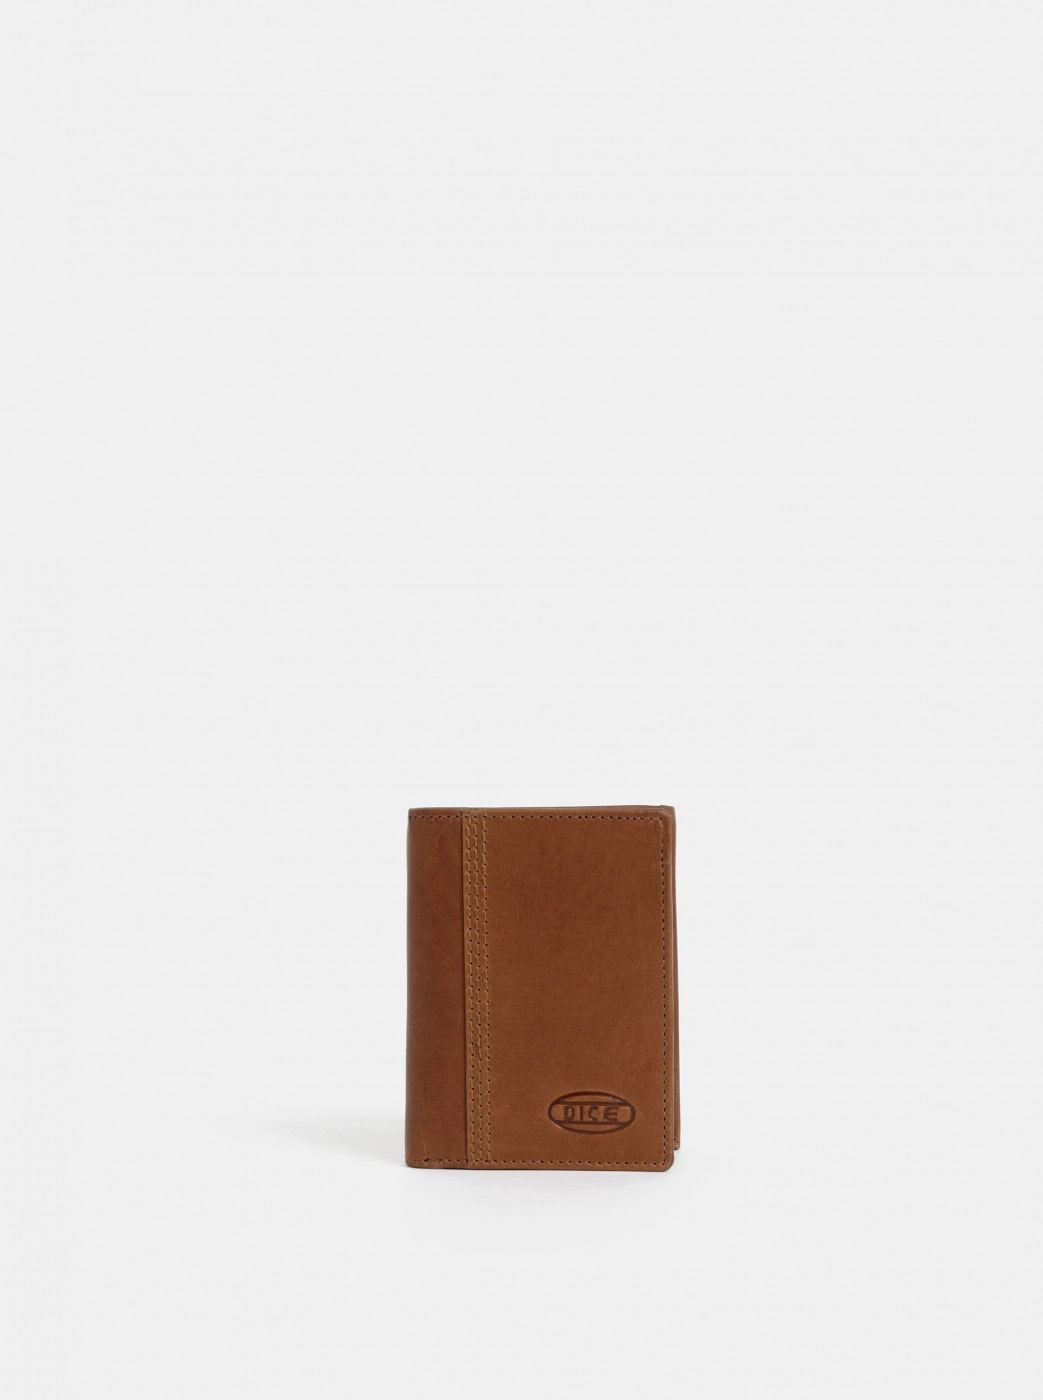 Dice Byron Brown Men's Leather Wallet